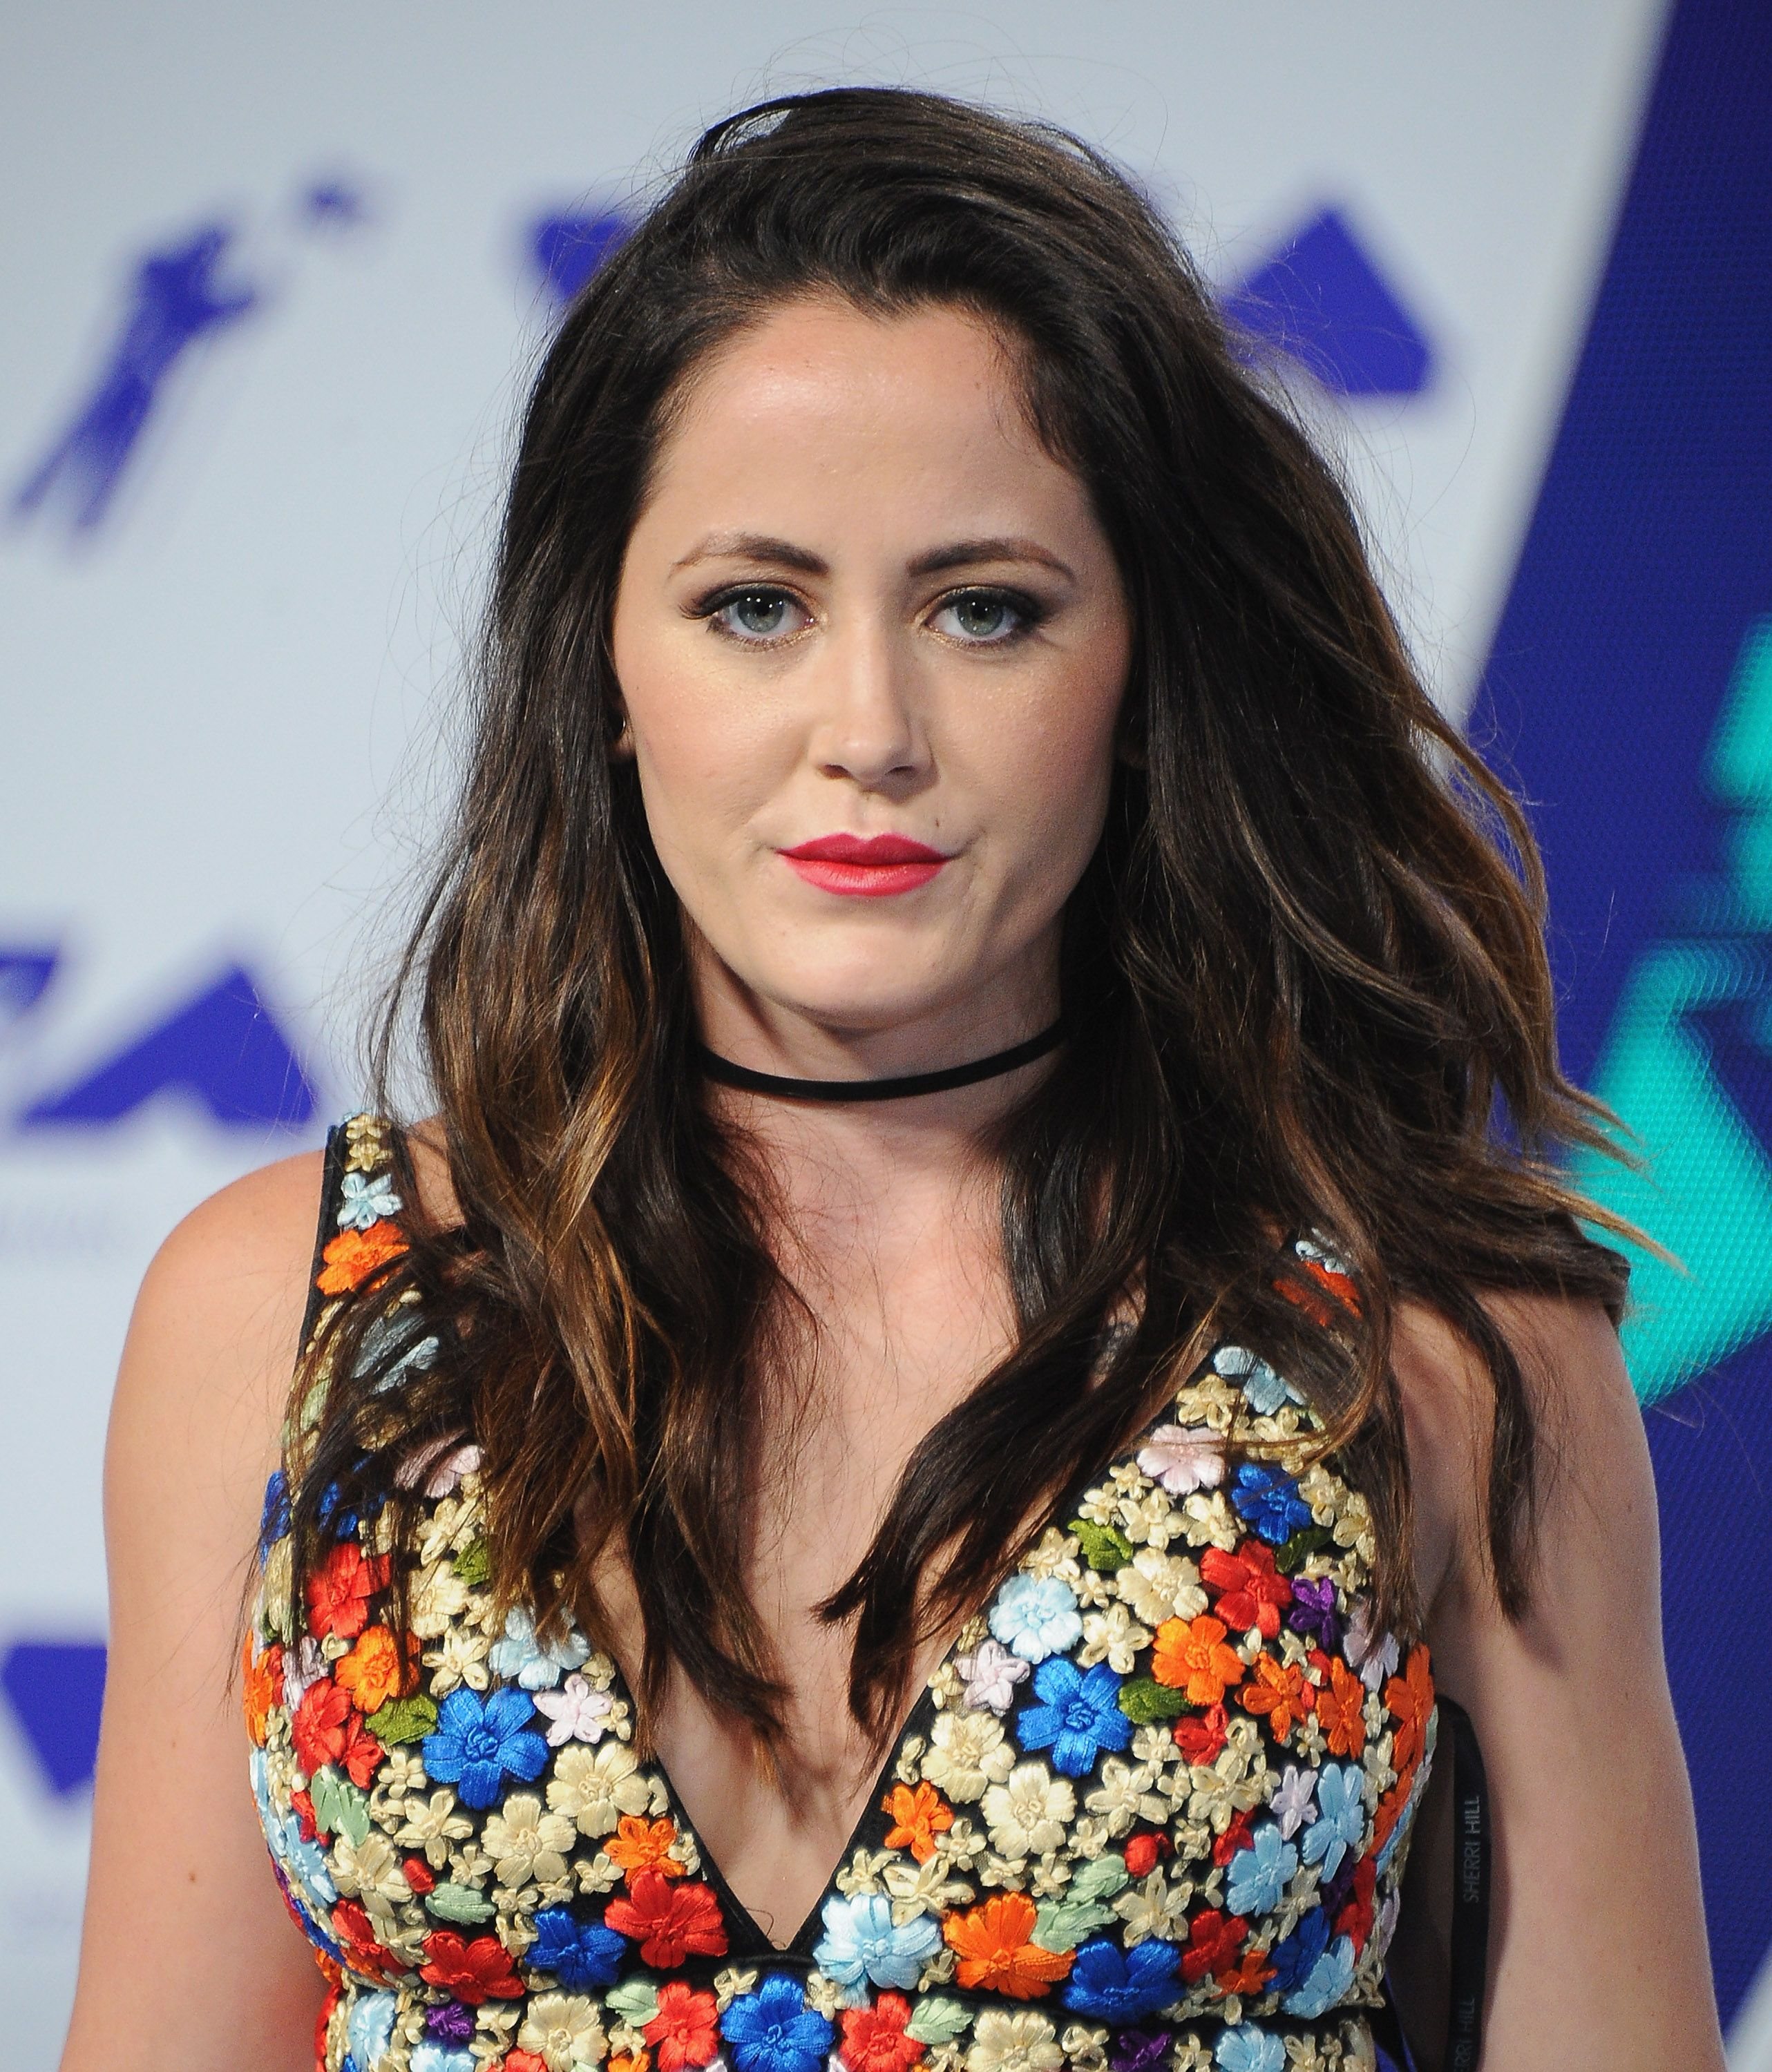 Jenelle Evans Stormed Off the 'Teen Mom' Set After She Tried to Drag Colin Kaepernick